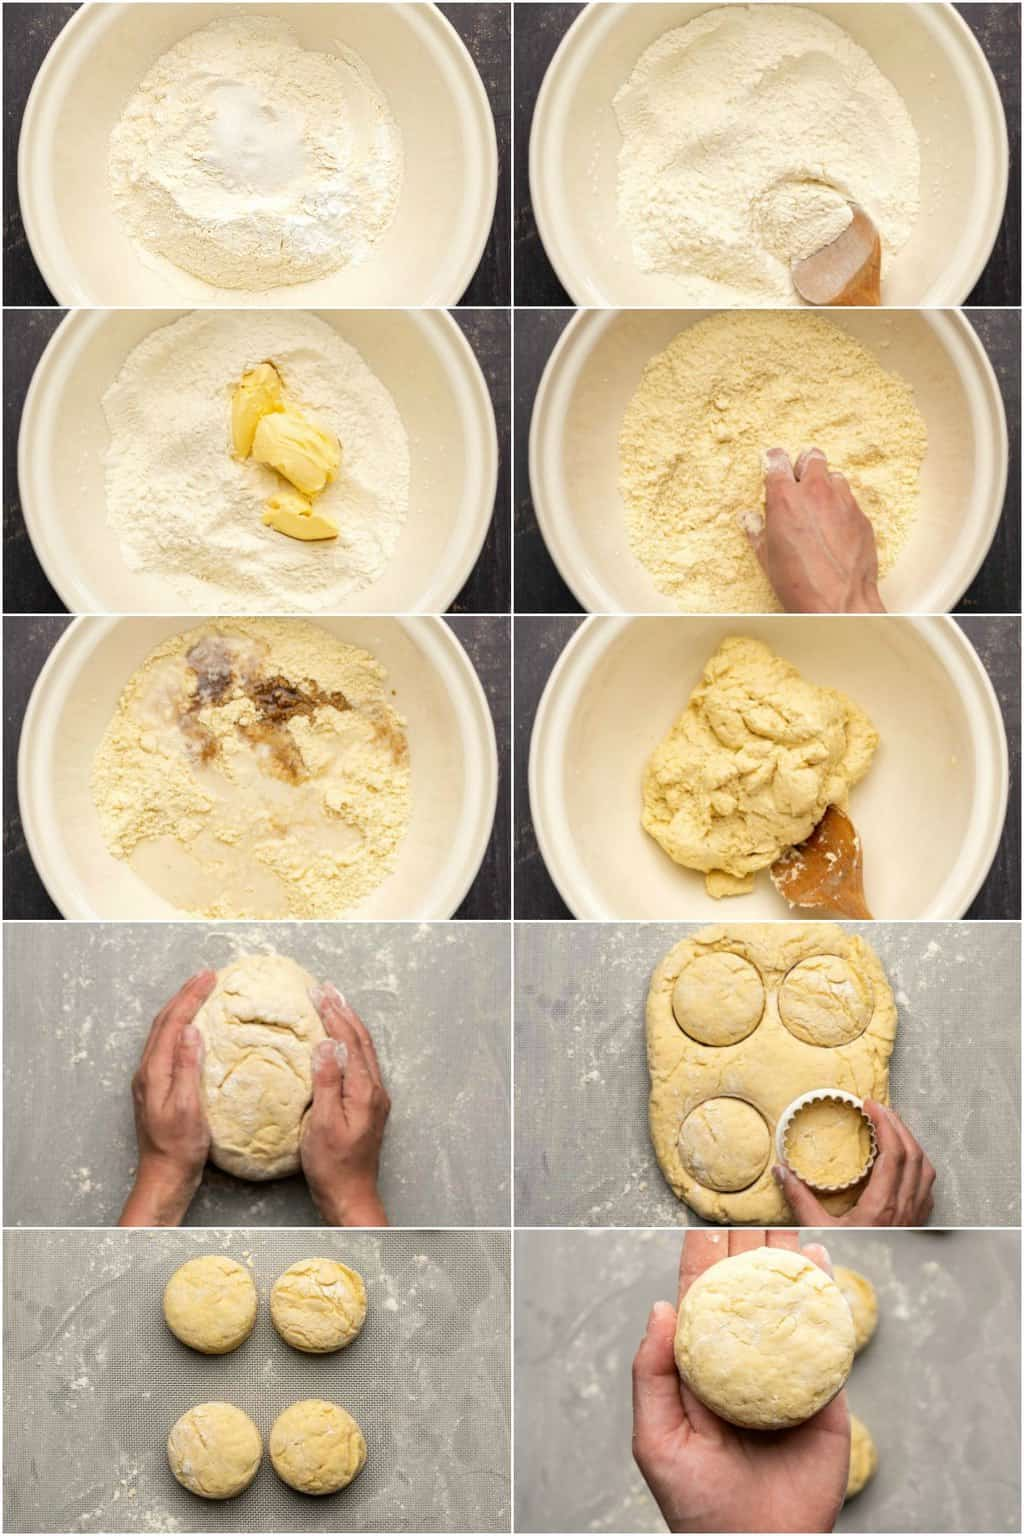 Step by step process photo collage of making vegan biscuits.